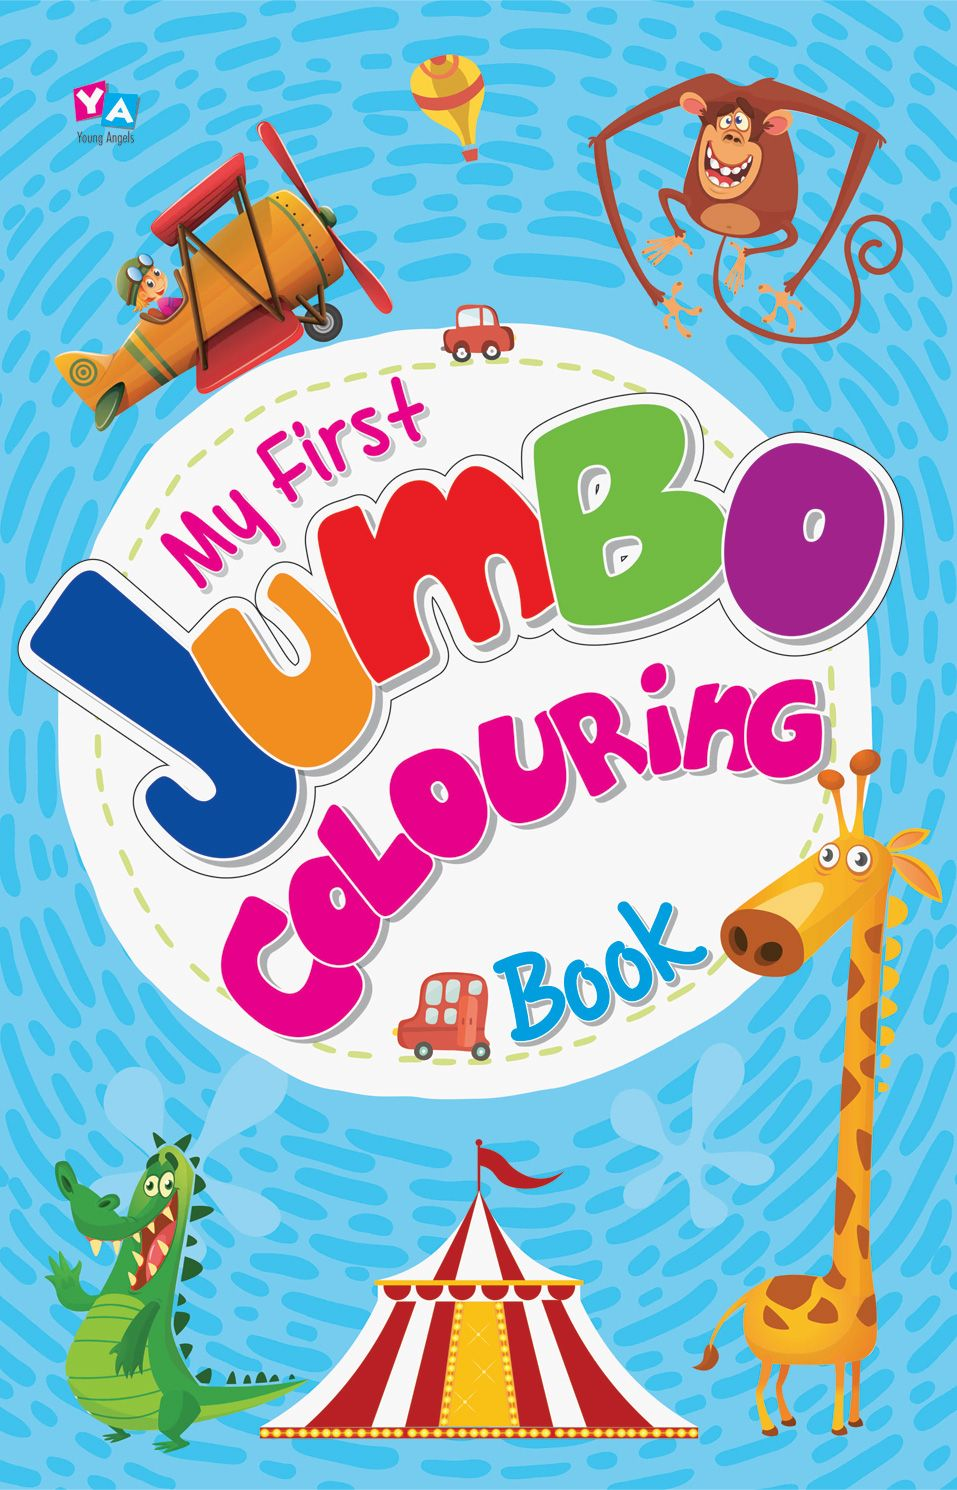 My First Jumbo Colouring Book Rs 90 My First Jumbo Colouring Book Delivers An Extensive Range Of Jumbo Pi Online Books For Kids Book Activities Helping Kids